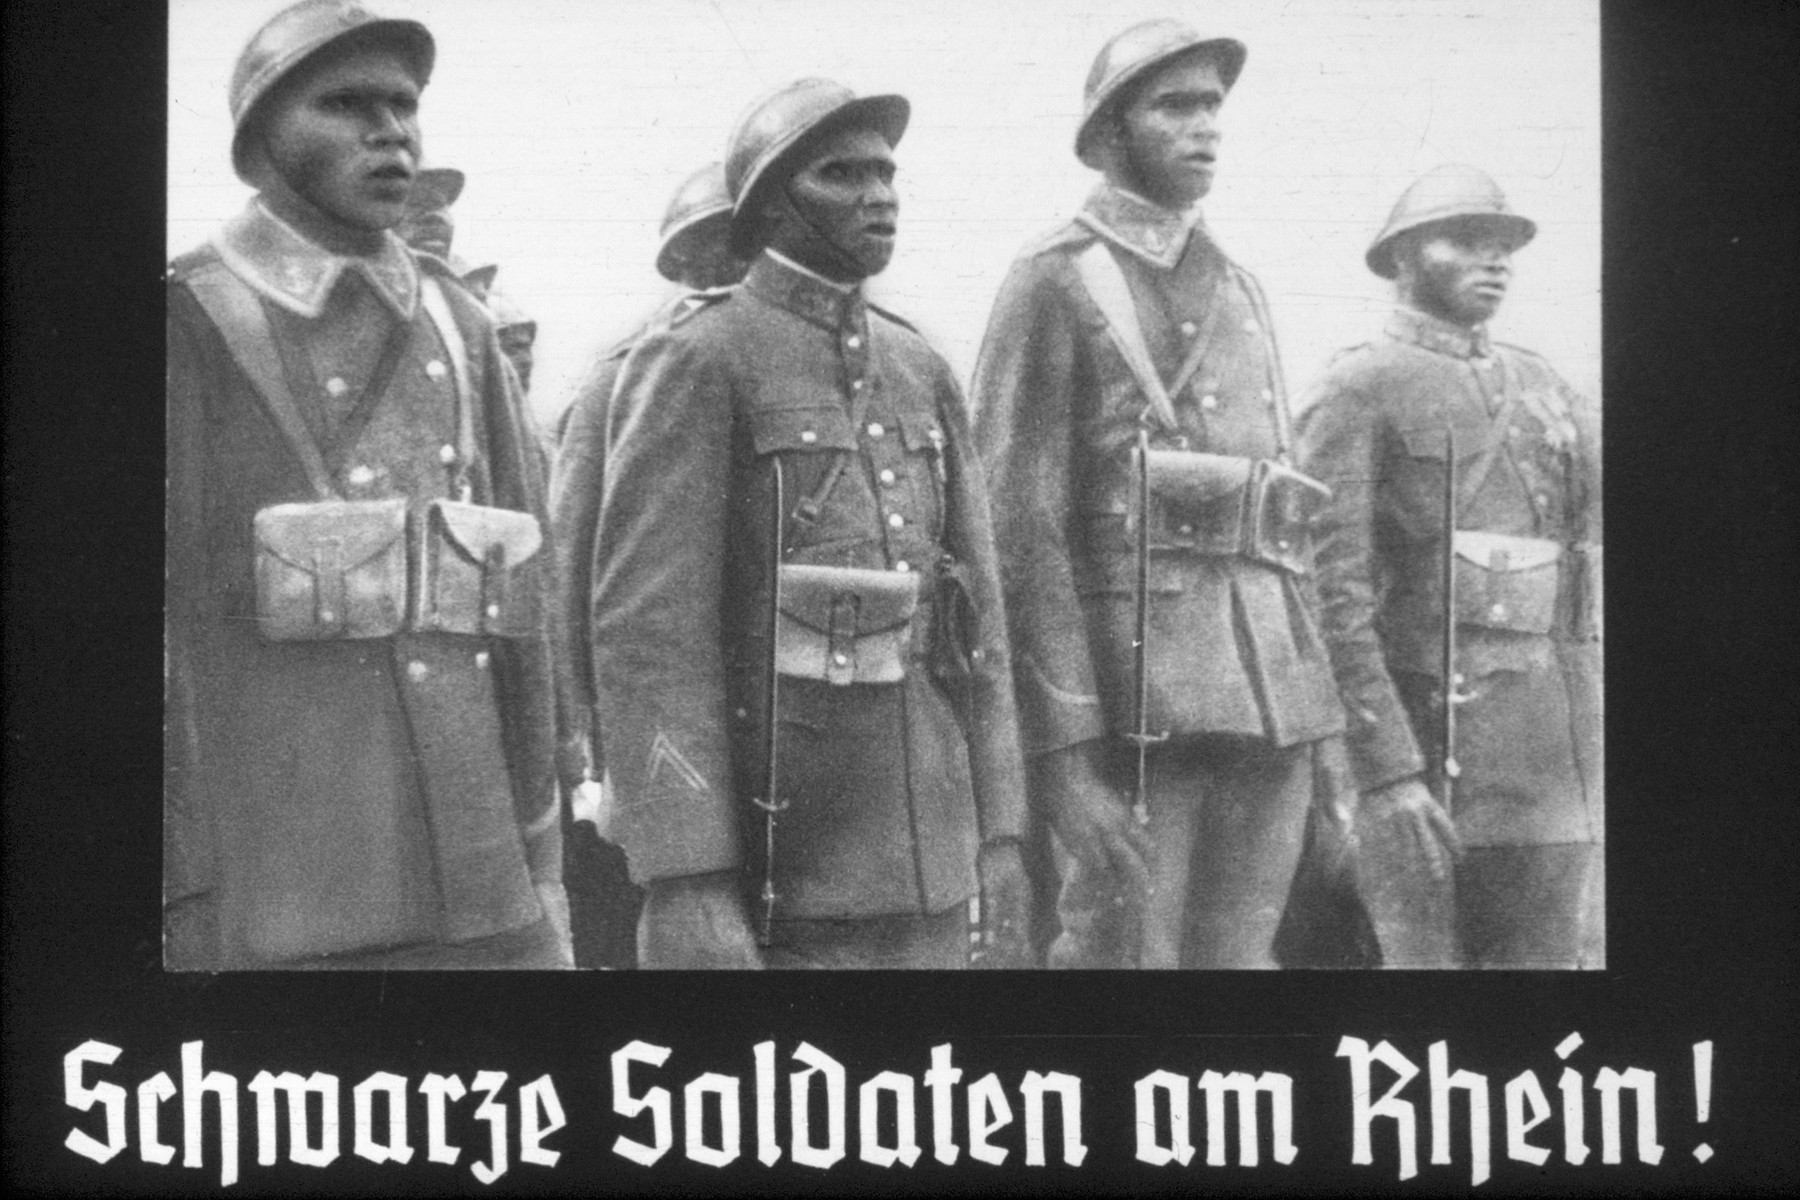 22th slide from a Hitler Youth slideshow about the aftermath of WWI, Versailles, how it was overcome and the rise of Nazism.  Schwarze Soldaten am Rhein! // Black soldiers on the Rhine!